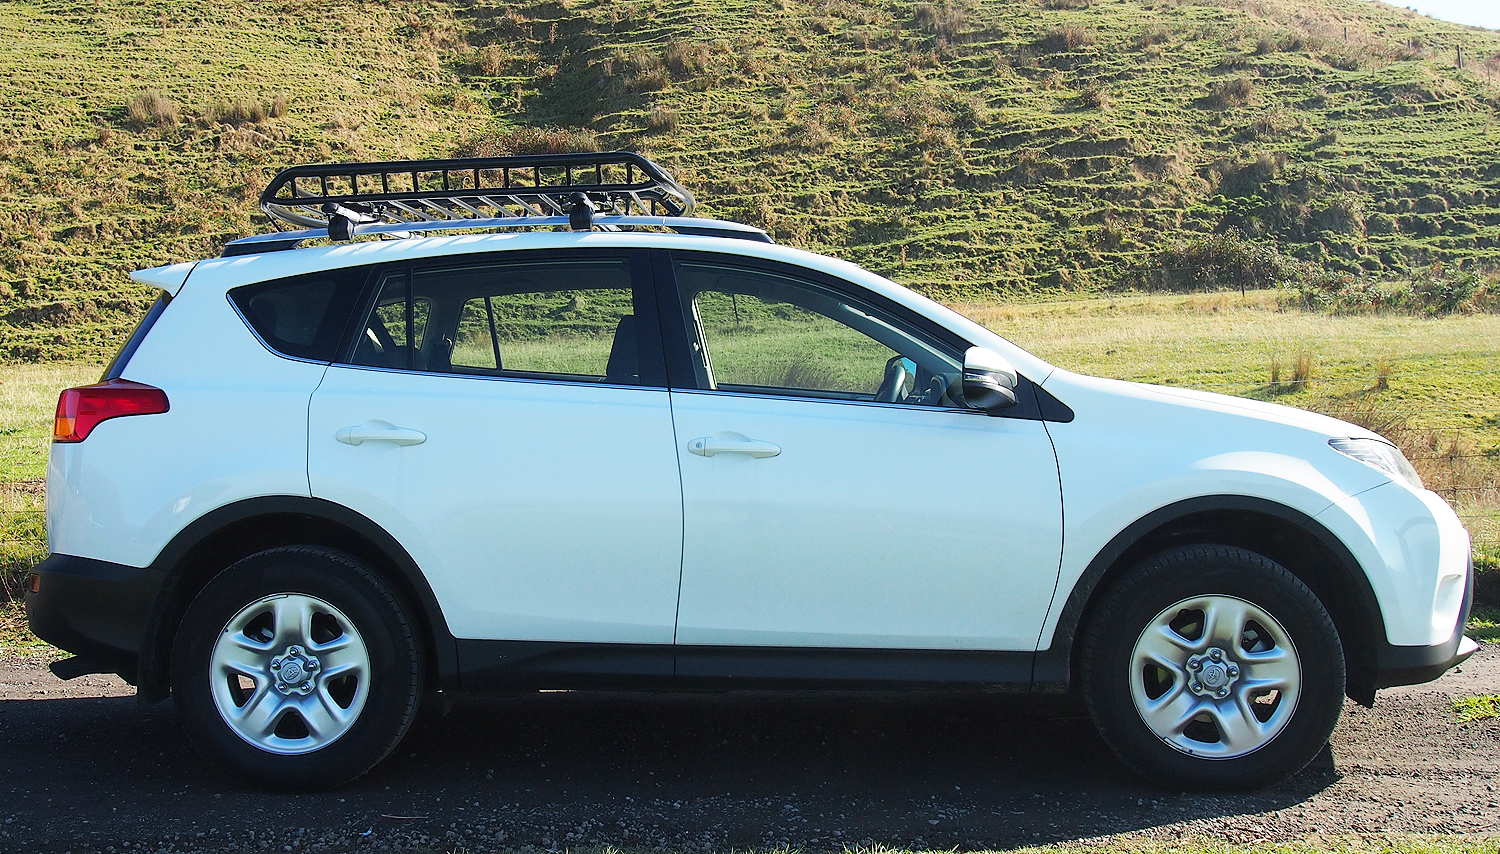 Small HD Steel Roof Cage on a Toyota RAV 4